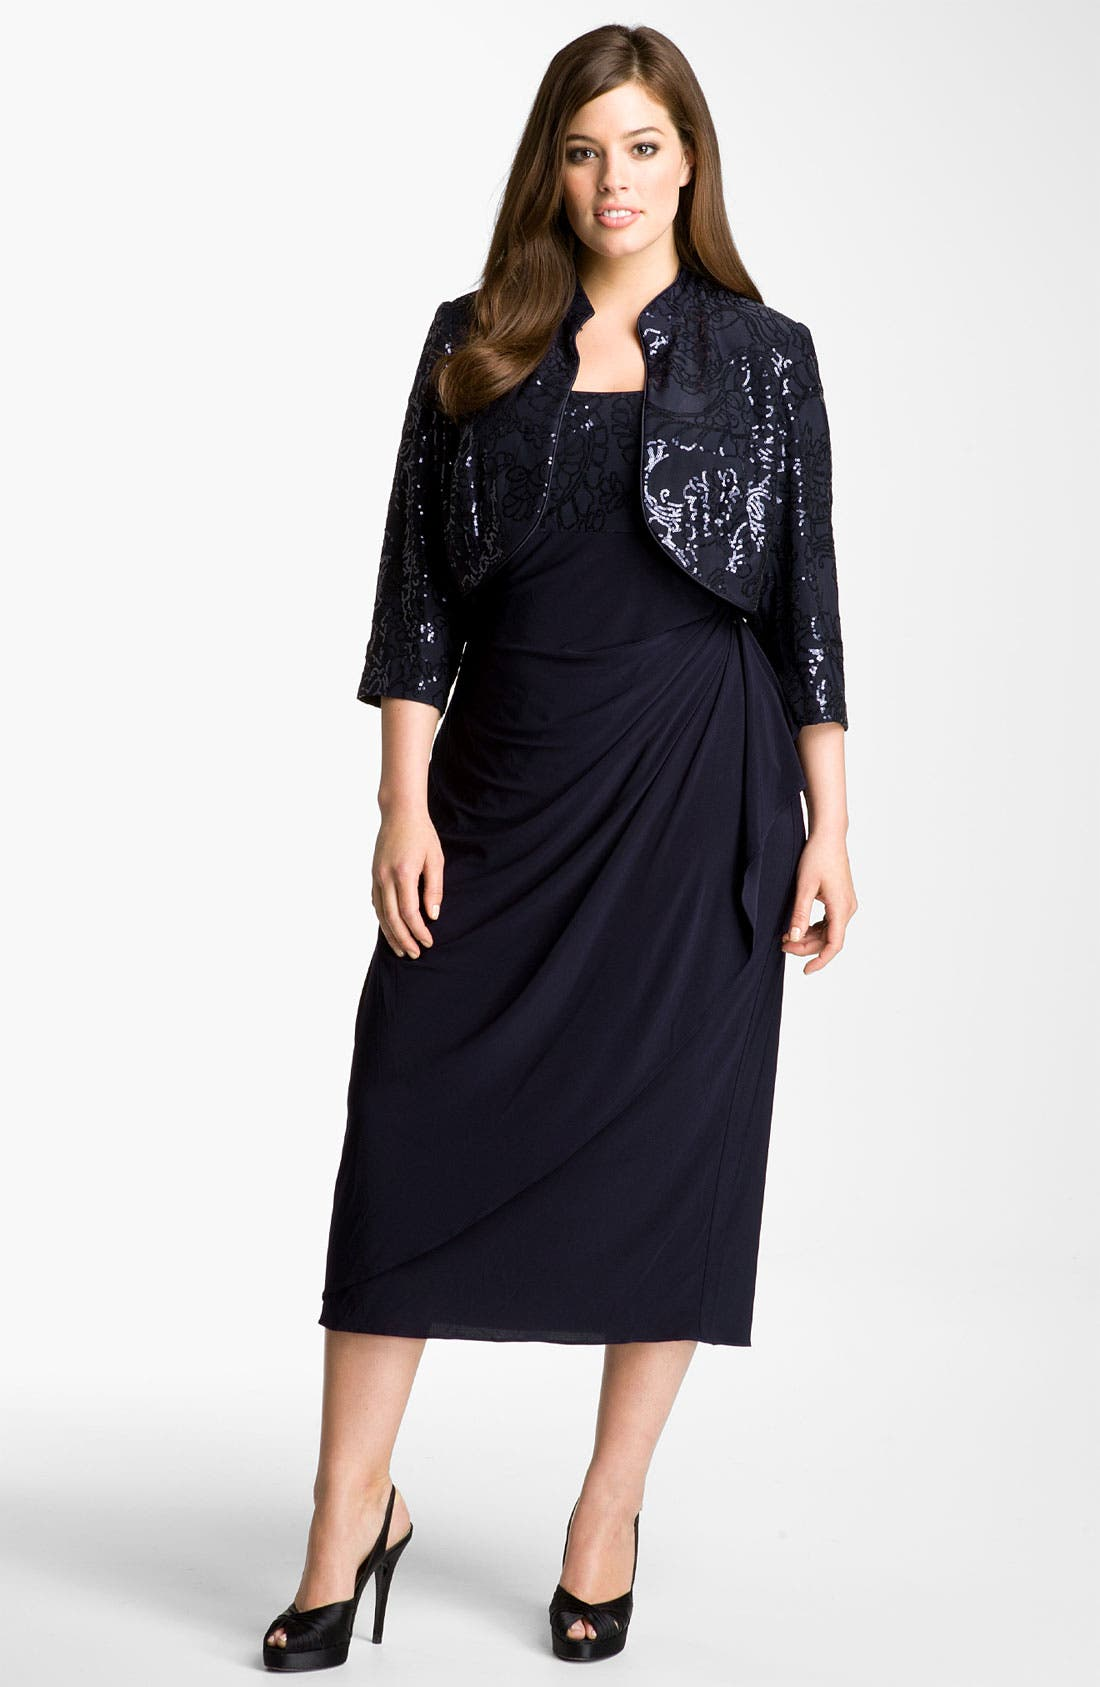 Alternate Image 1 Selected - Alex Evenings Gathered Dress & Jacket (Plus Size)